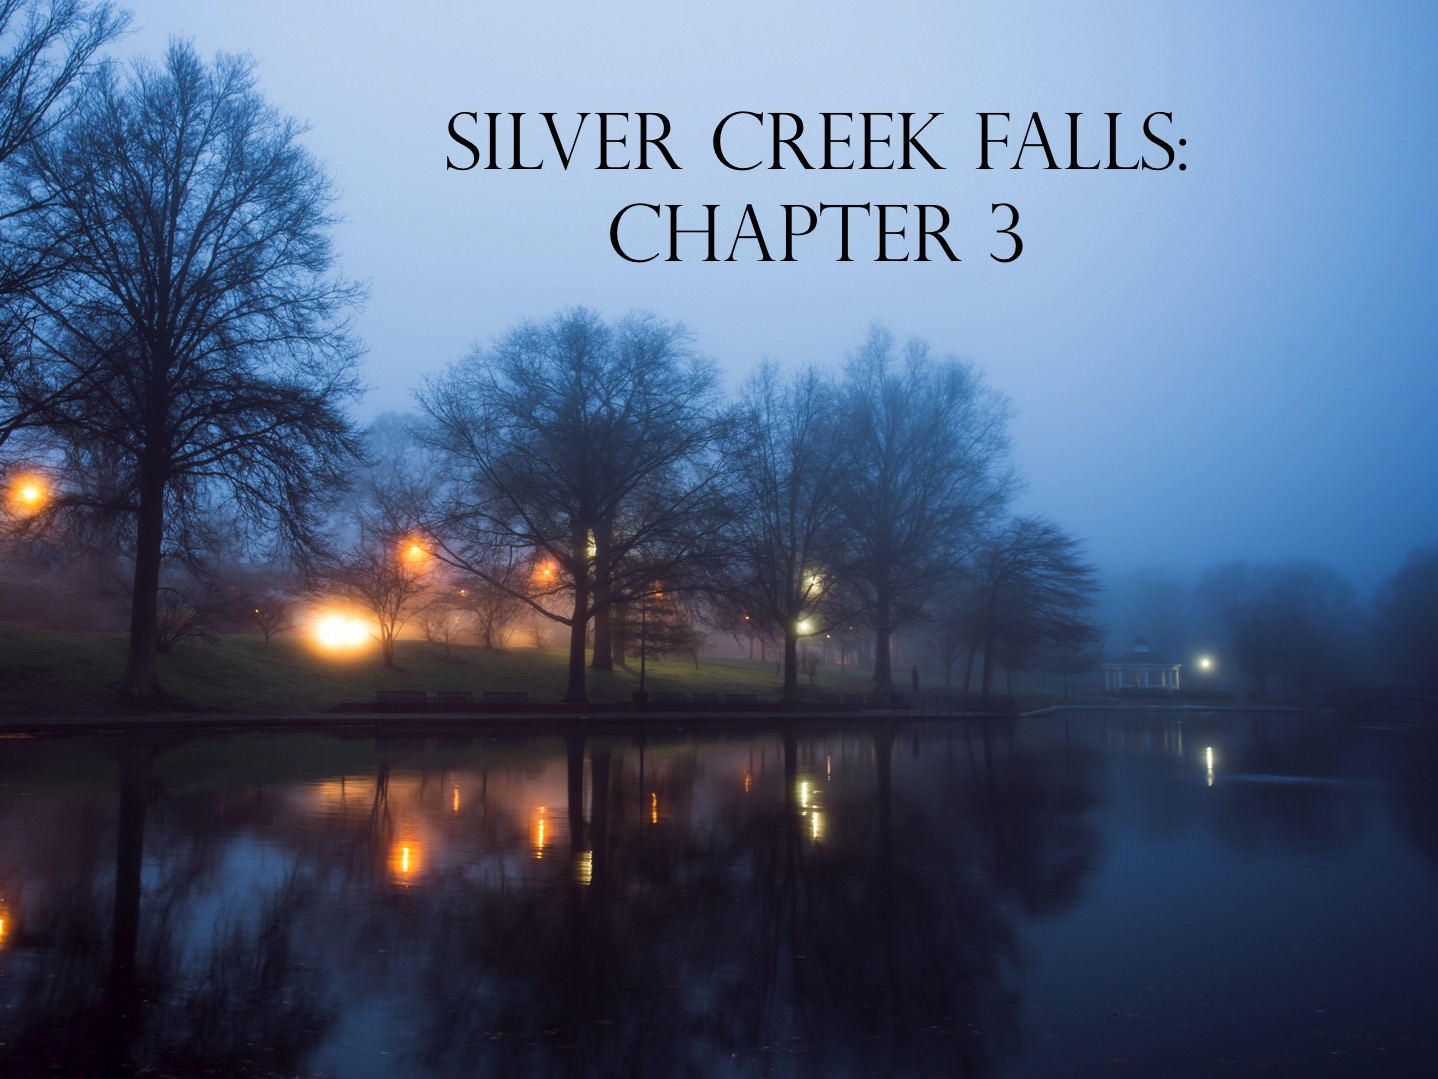 Silver Creek Falls - Chapter 3 screenshot